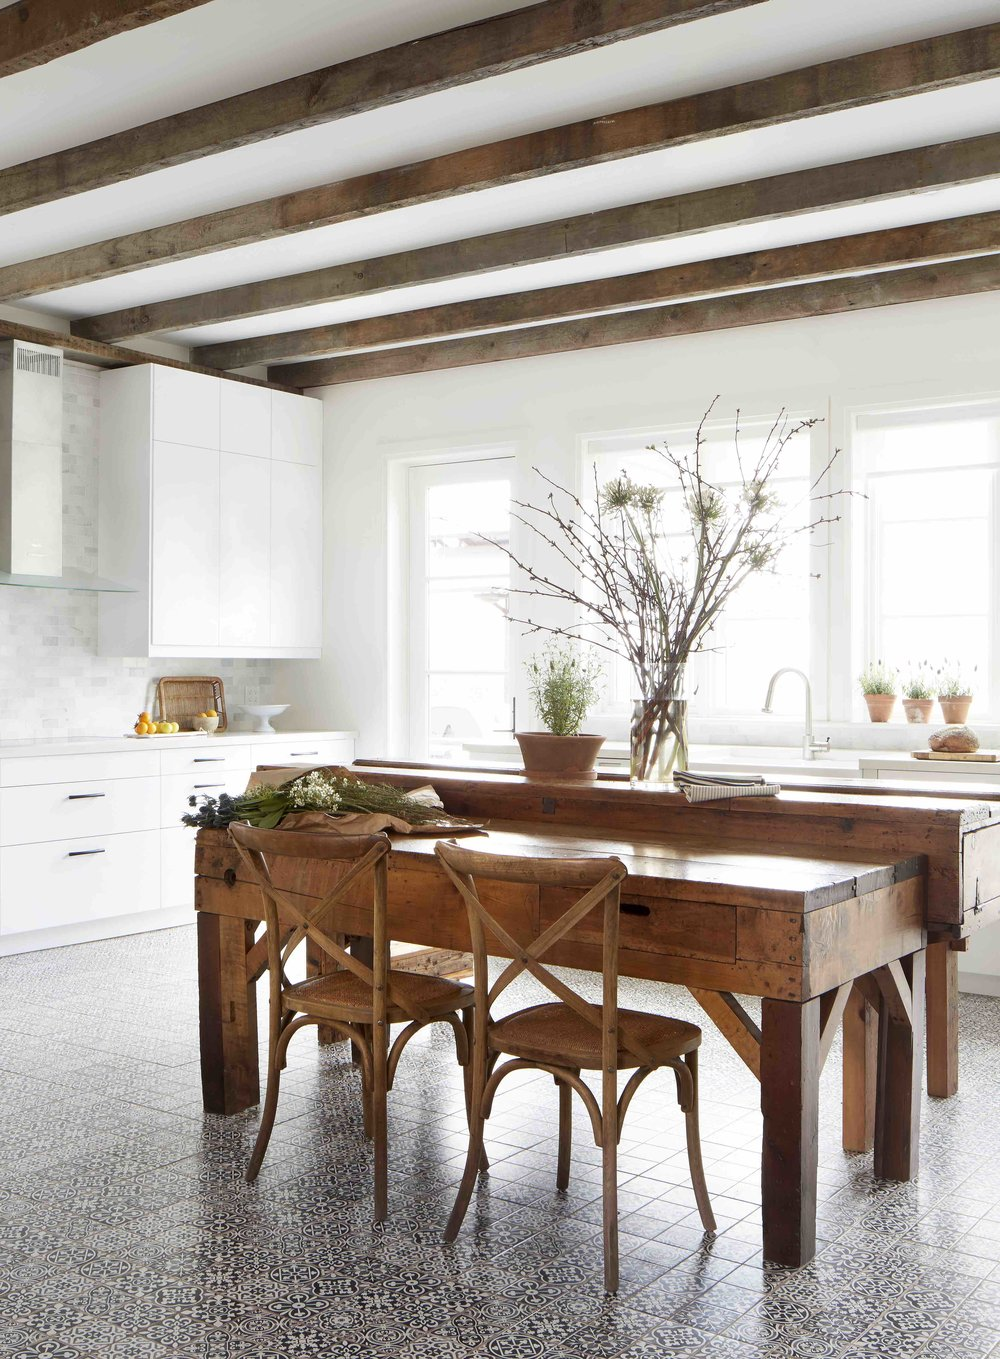 14. MiltonFarmHouse_Kitchen_Overall_Vertical_F1.jpg